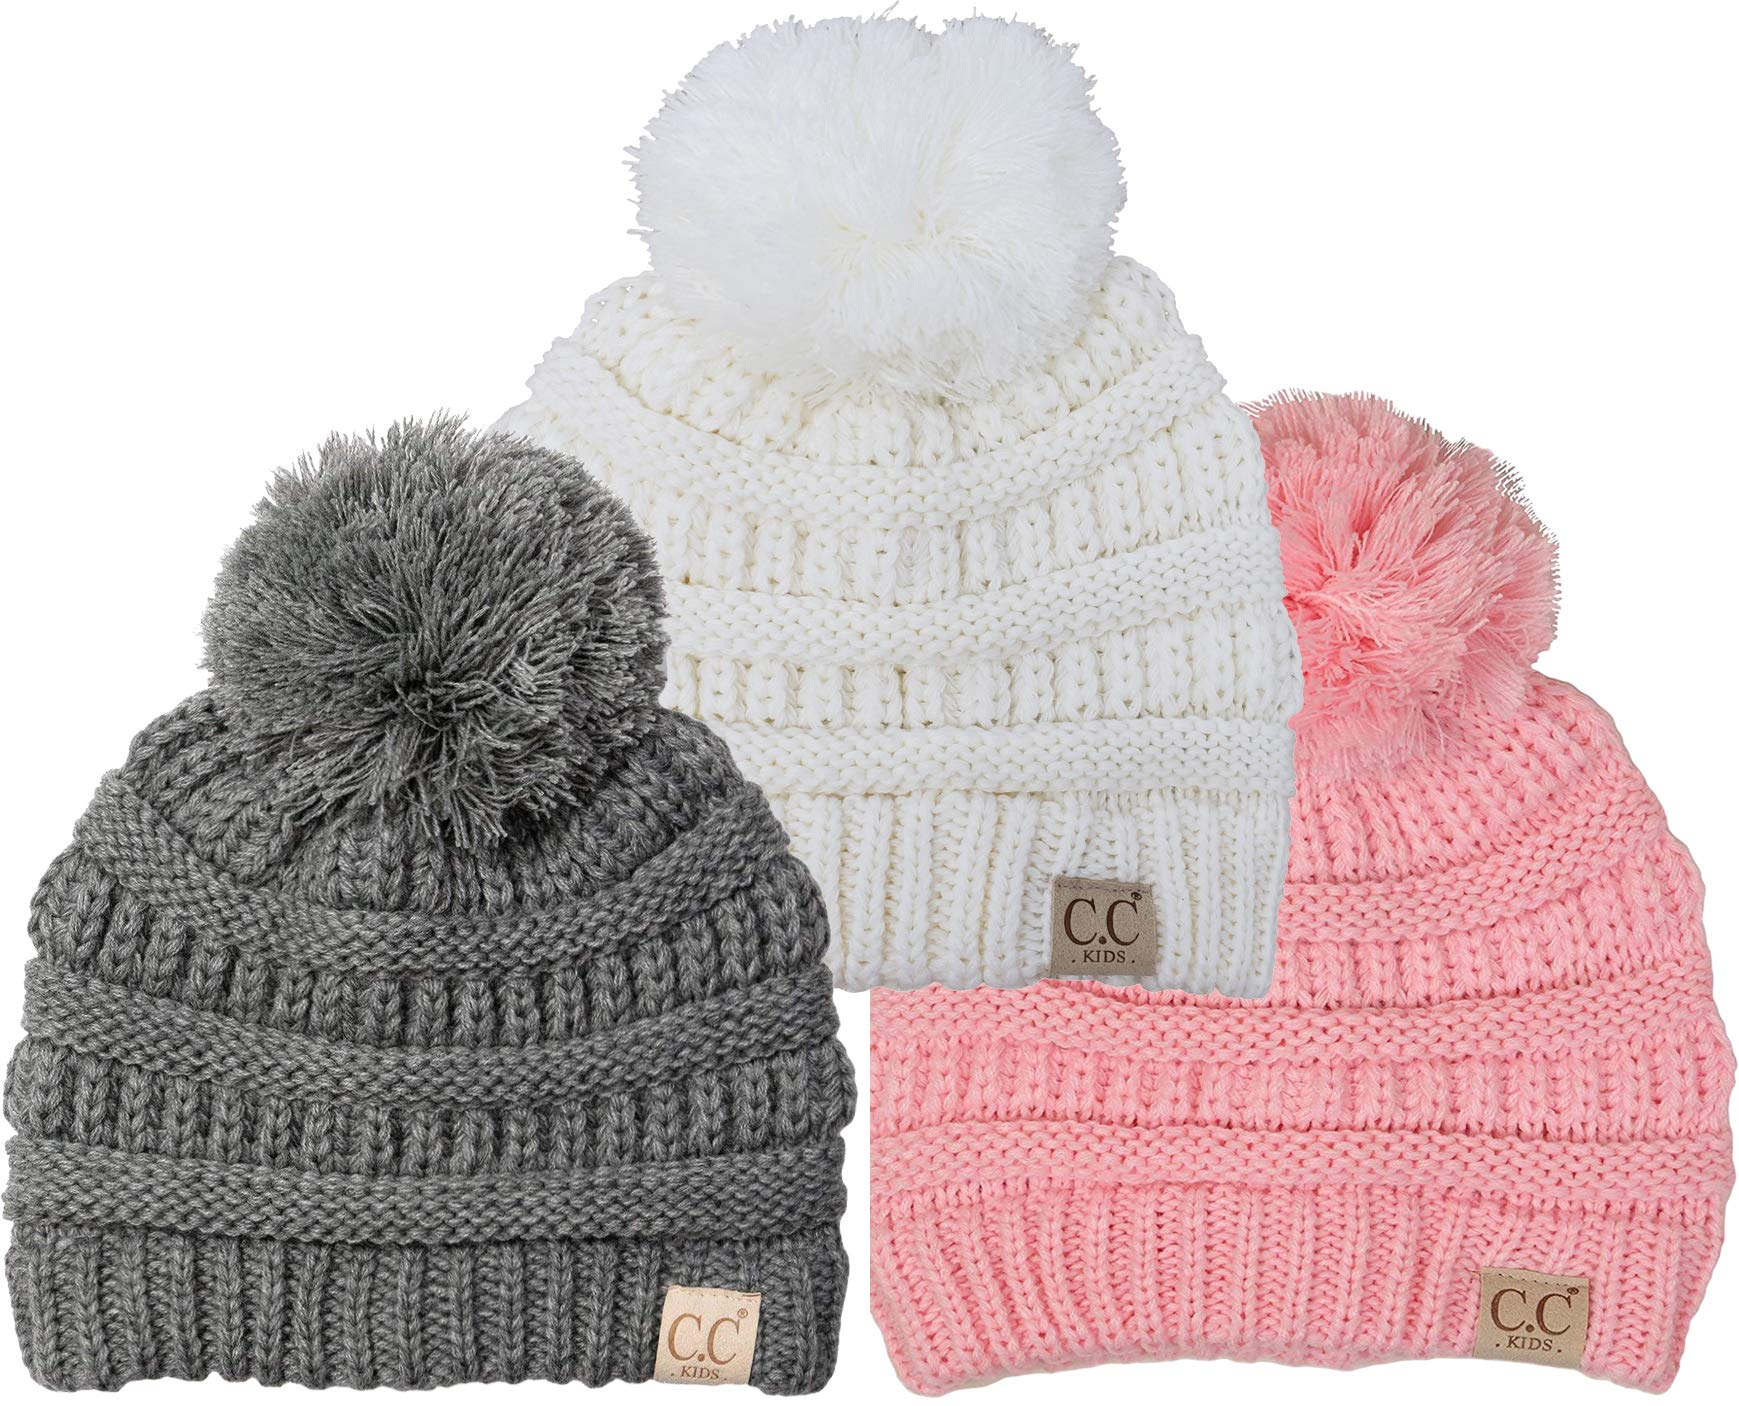 H-6847-3-212529 Kids Pom Beanie Bundle: Grey, Ivory, Pale Pink (3 Pack) by Funky Junque